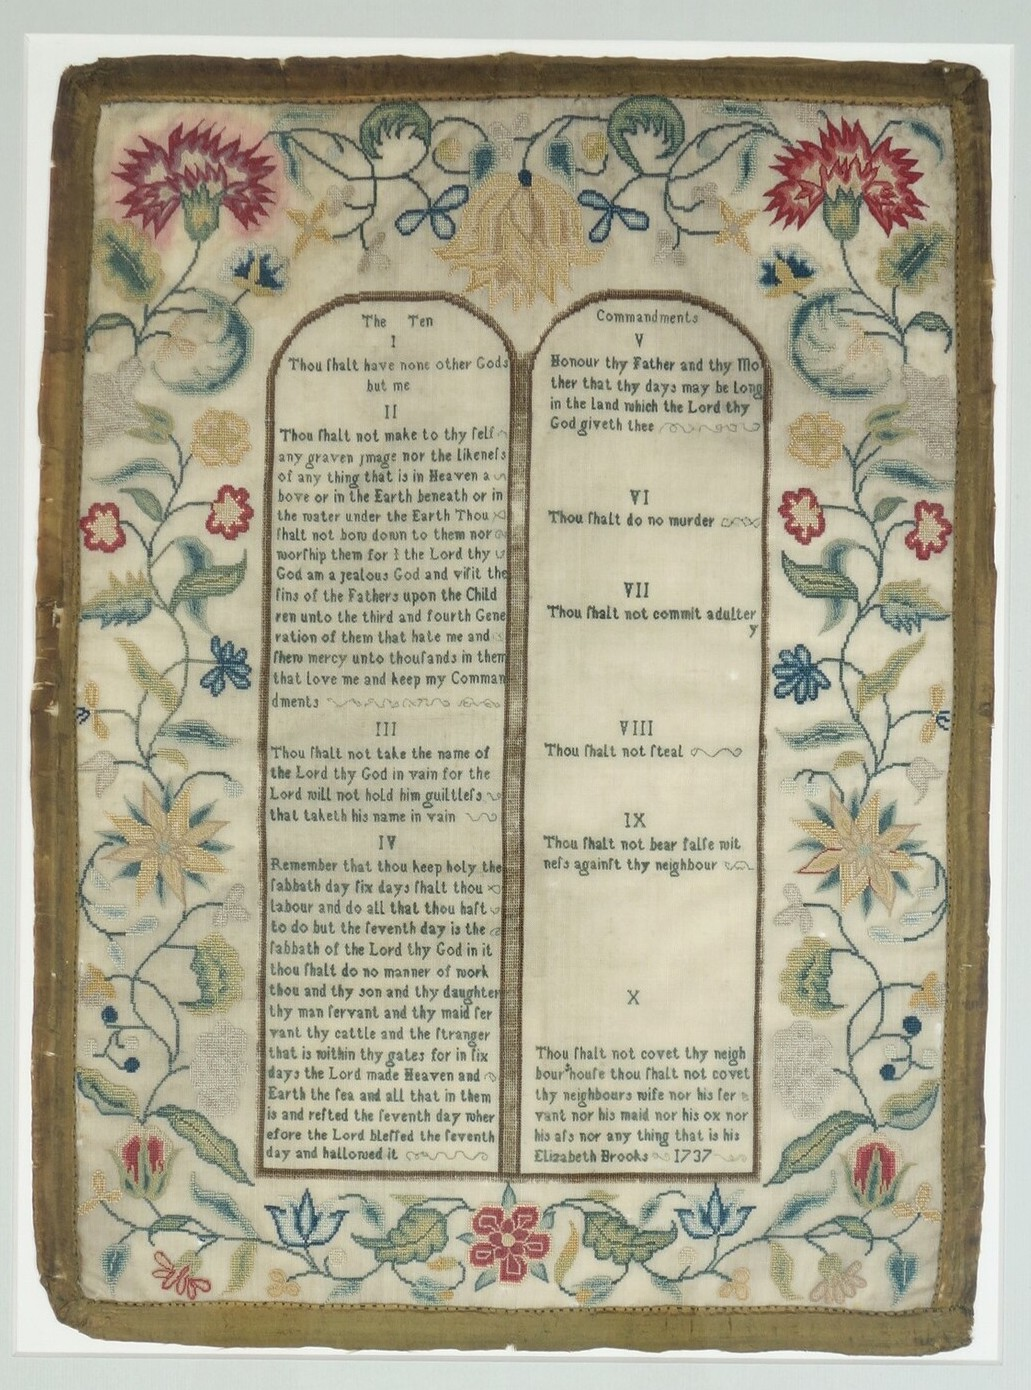 Embroidered sampler worked by Elizabeth Brooks in England, in 1737, showing the two tablets with the Ten Commandments (TRC 2020.3317).